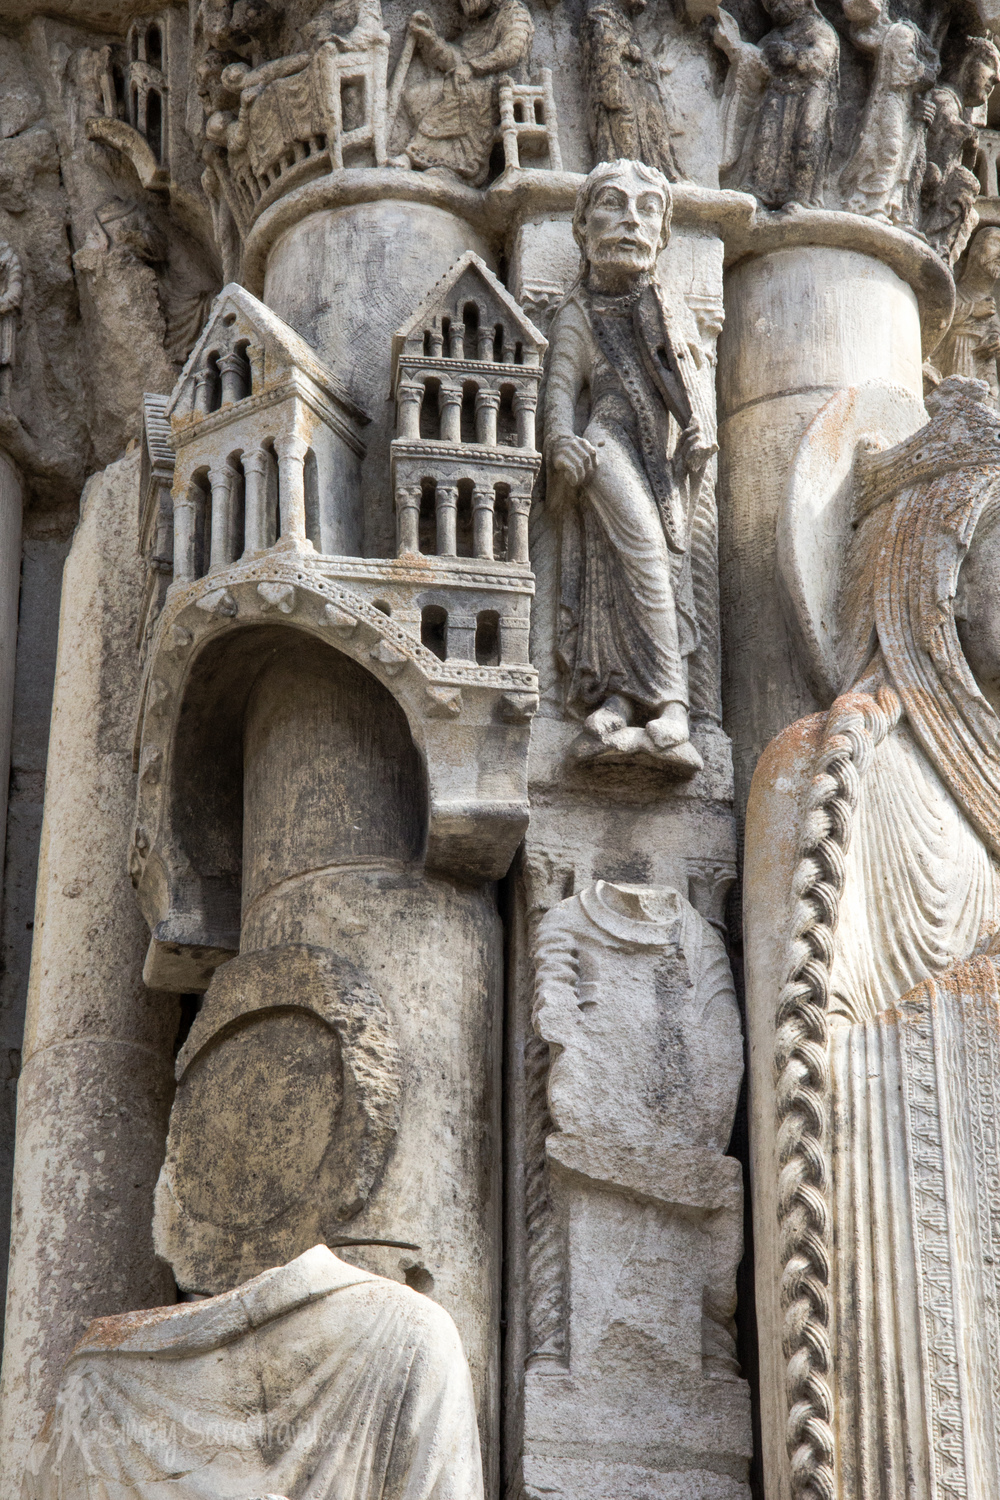 Outside sculptures at Chartres Cathedral, France